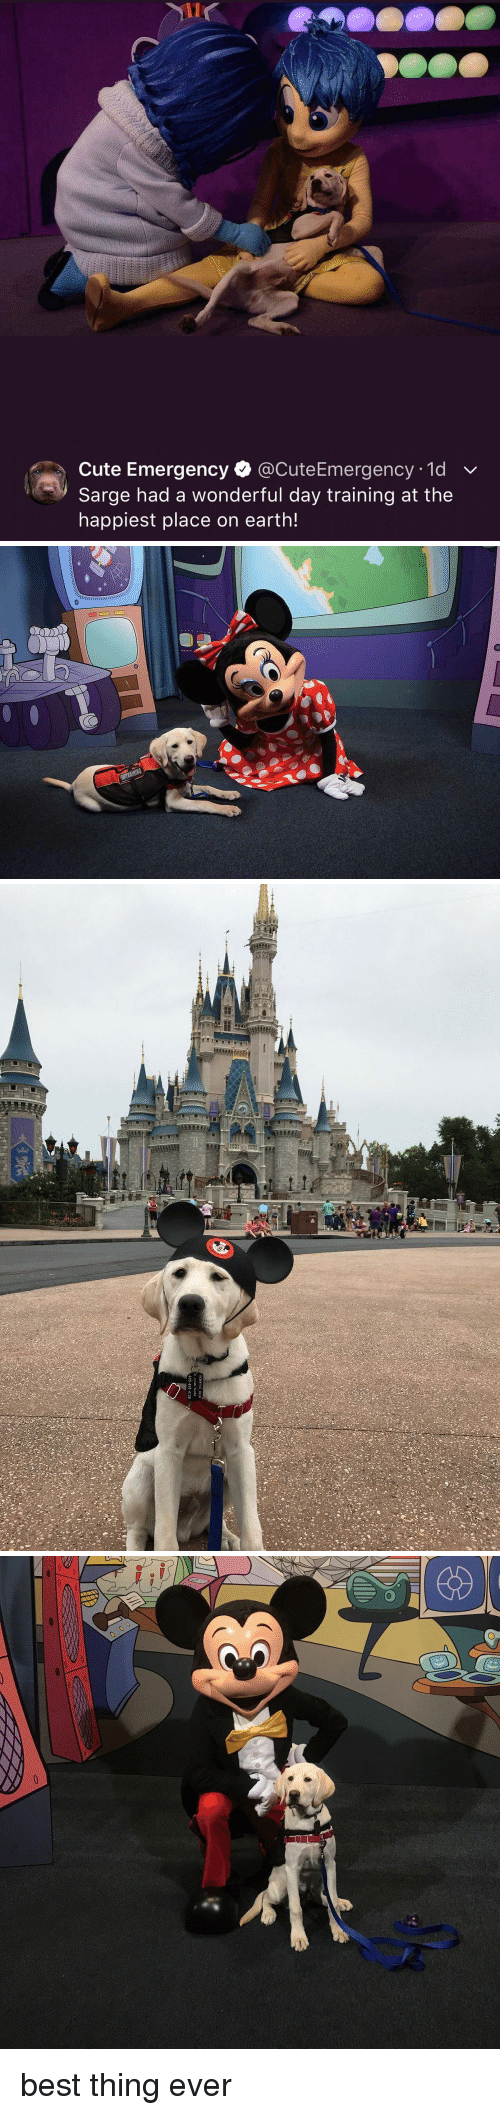 Cute Emergency: Cute Emergency @CuteEmergency 1d v  Sarge had a wonderful day training at the  happiest place on earth! <p>best thing ever</p>